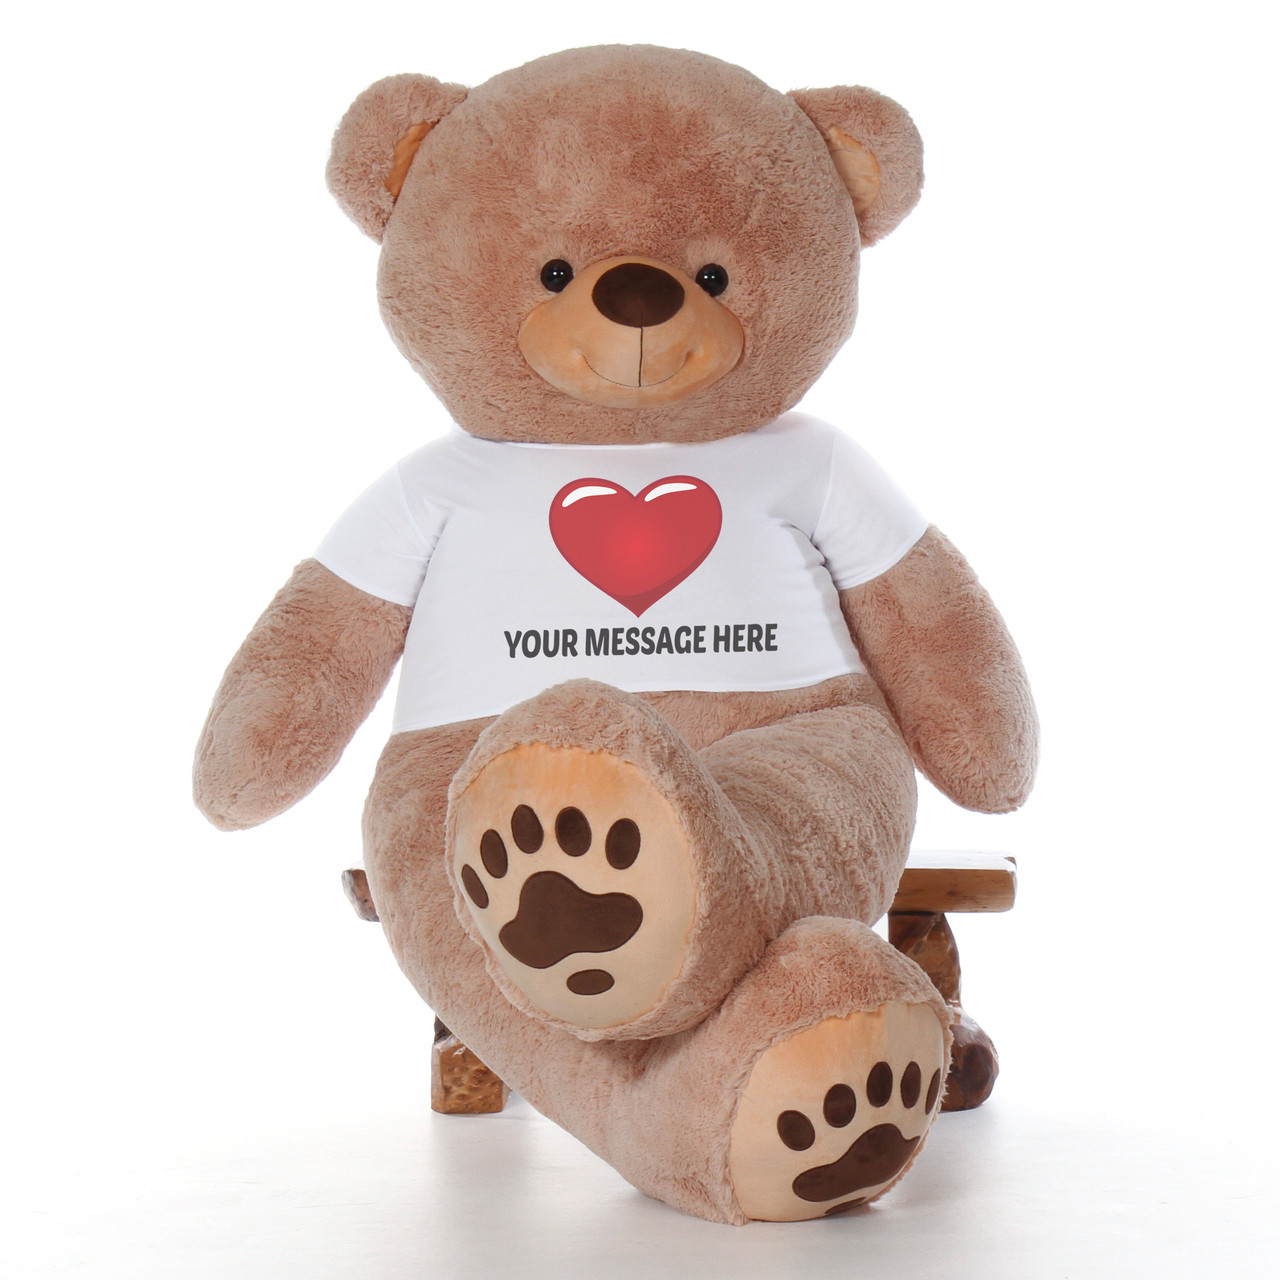 7 Foot Giant Personalized Teddy Bear - Teddy & Hugs